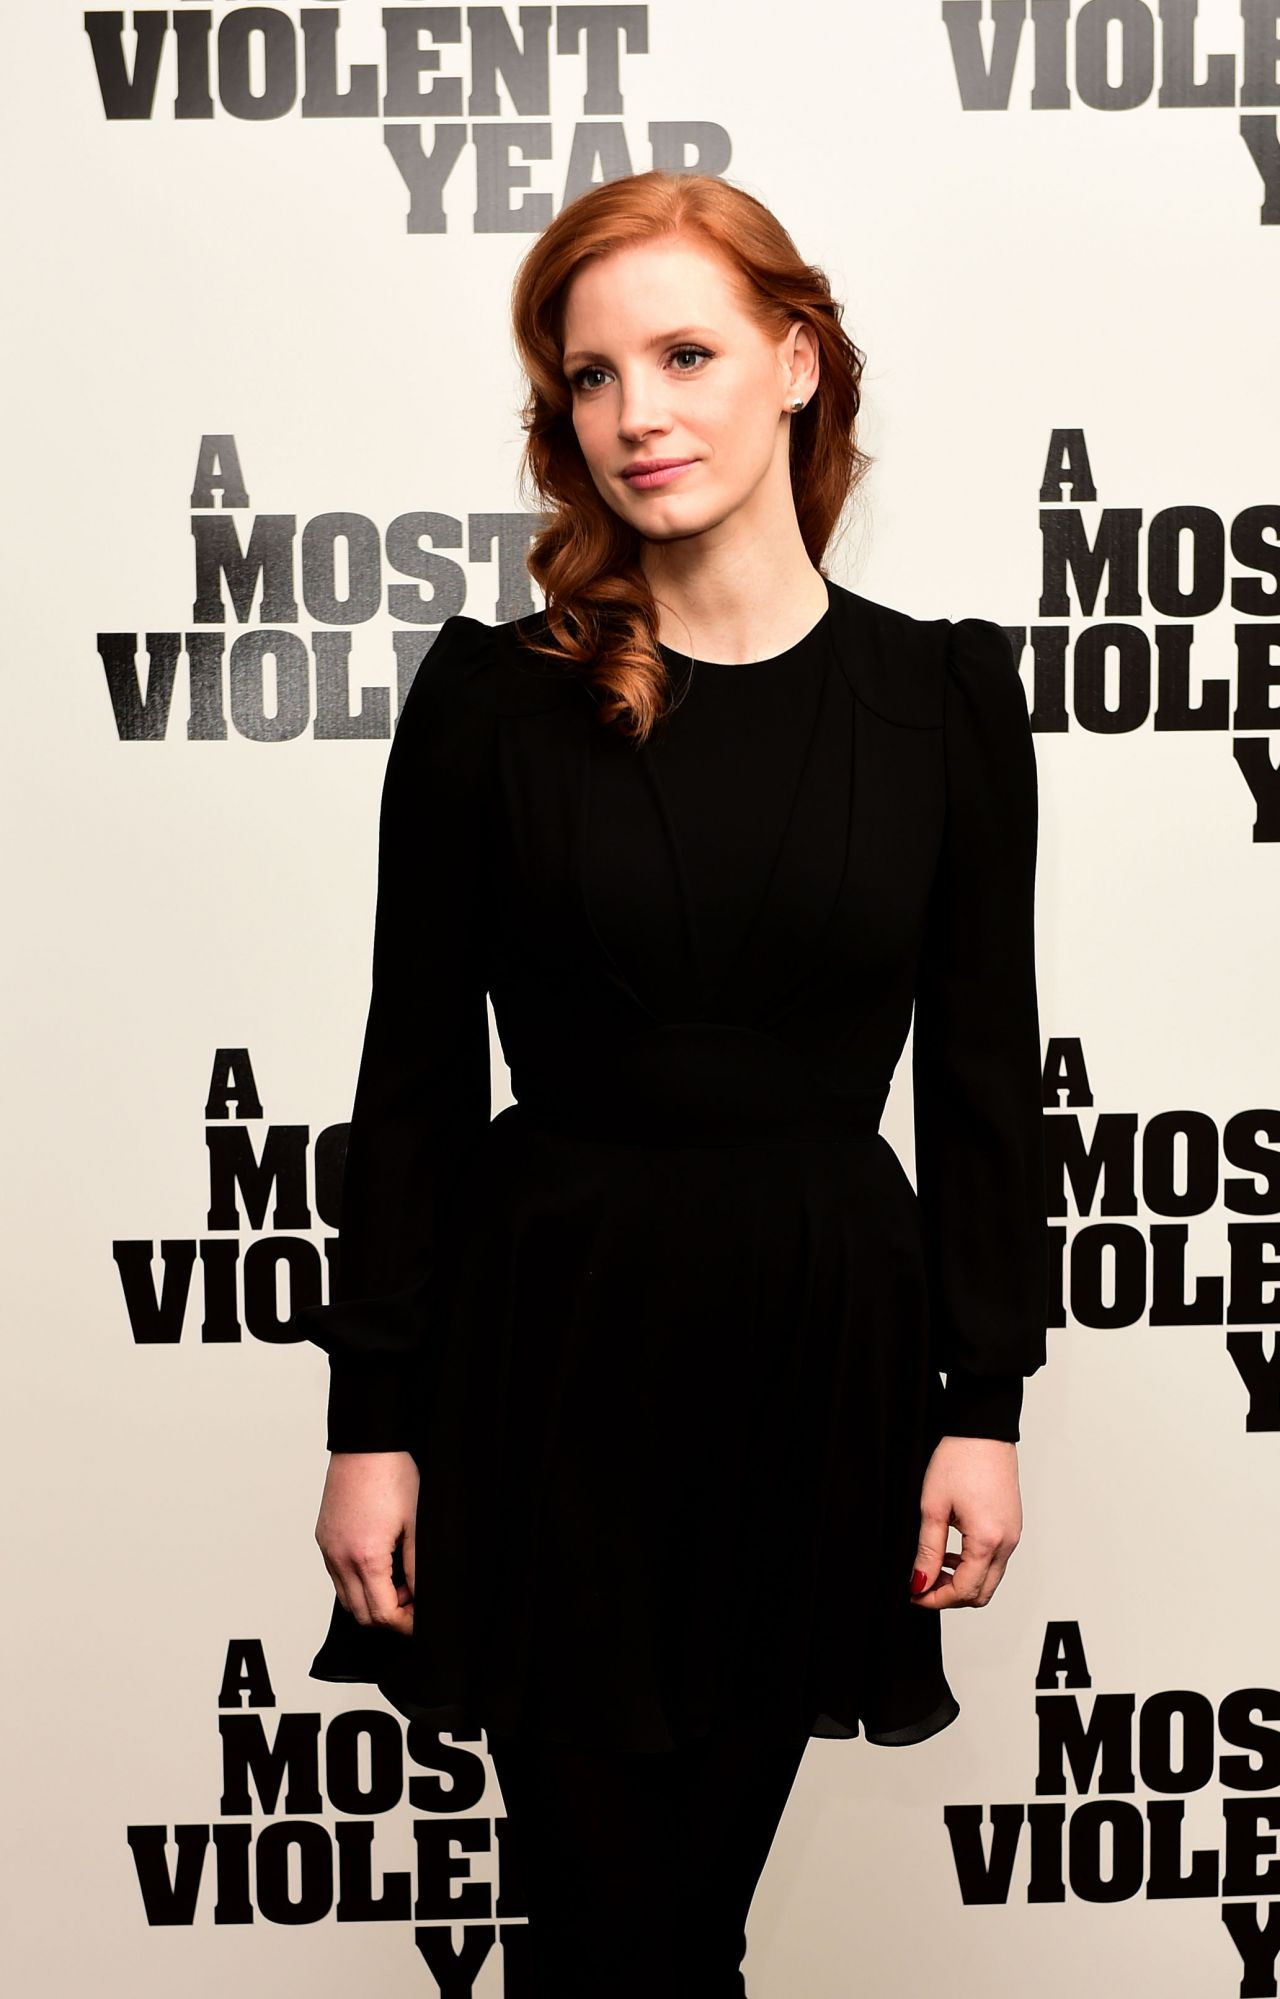 jessica-chastain-saint-laurent-violent-year-london-photocall